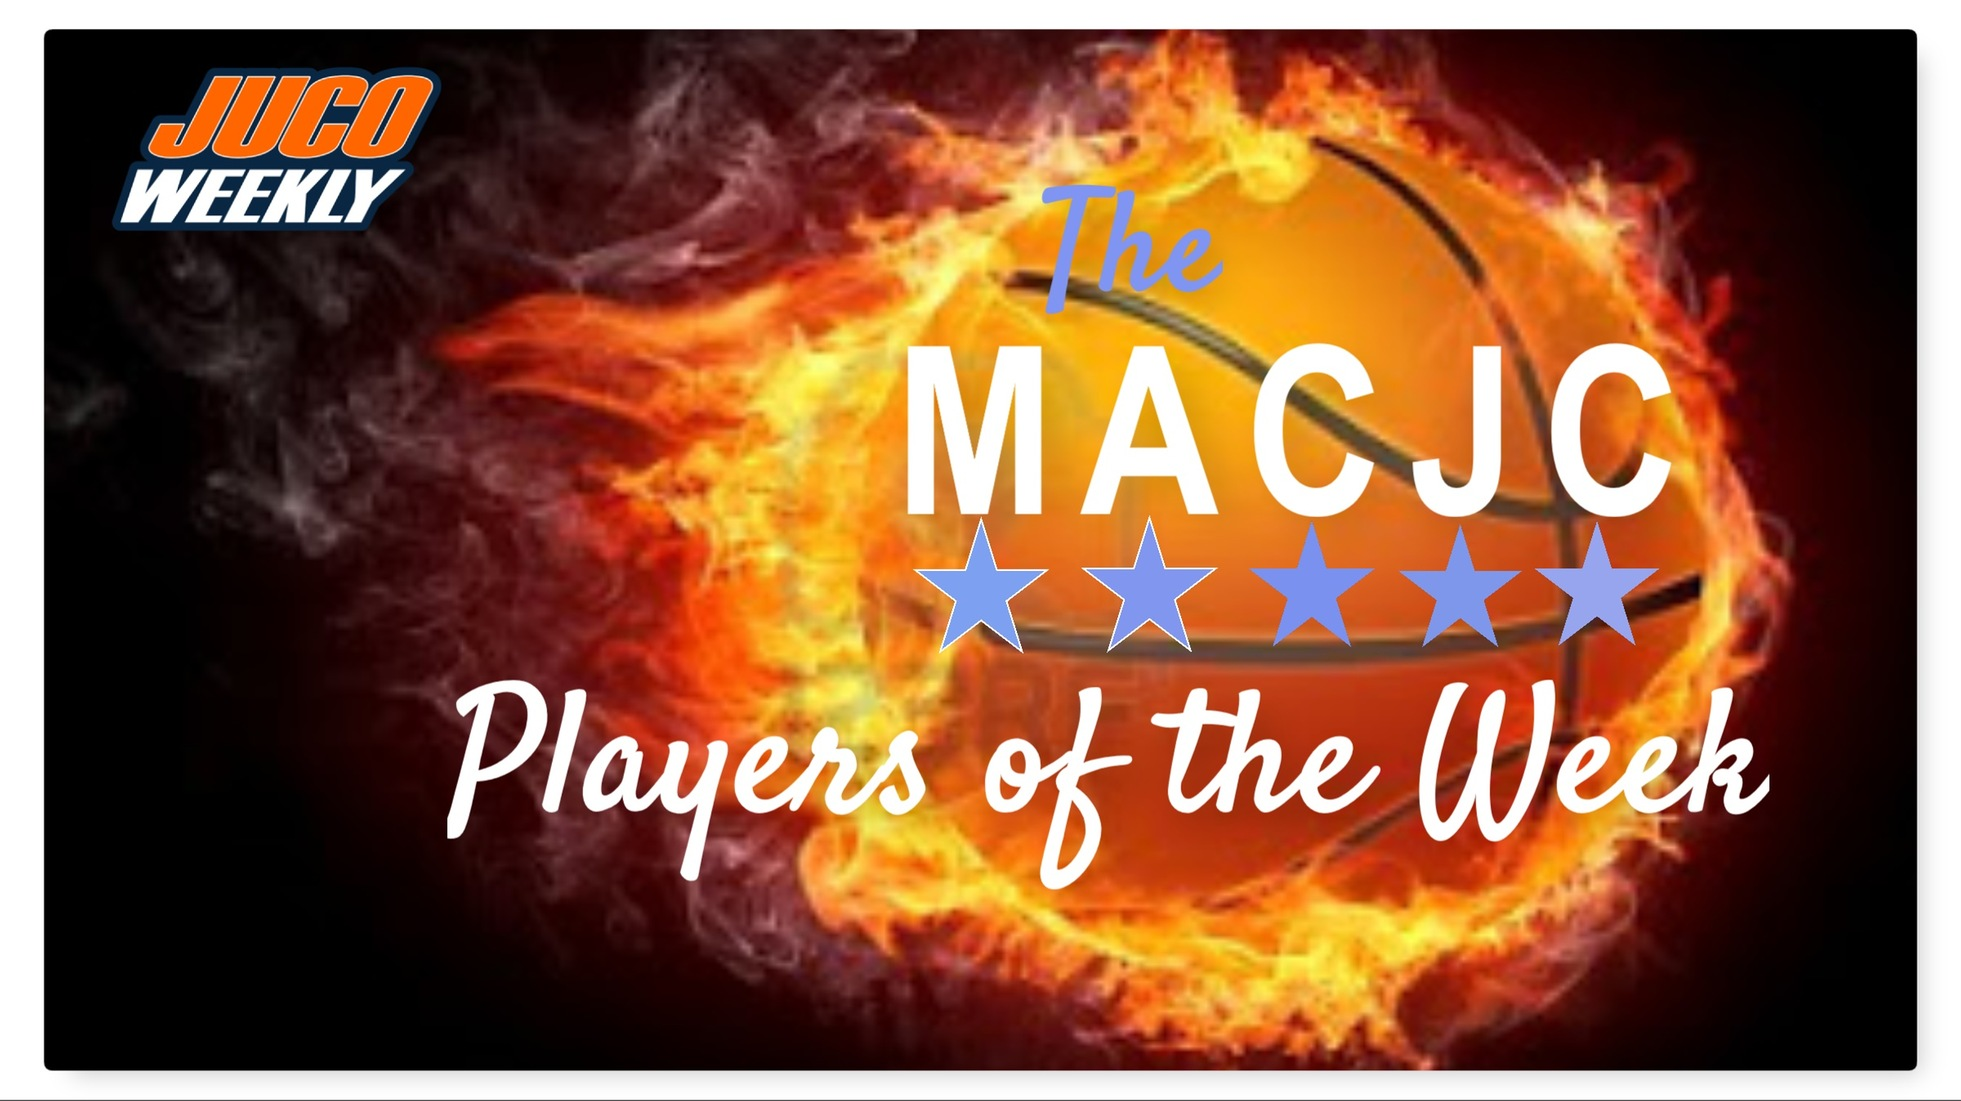 MACJC Players of the Week - Week 12